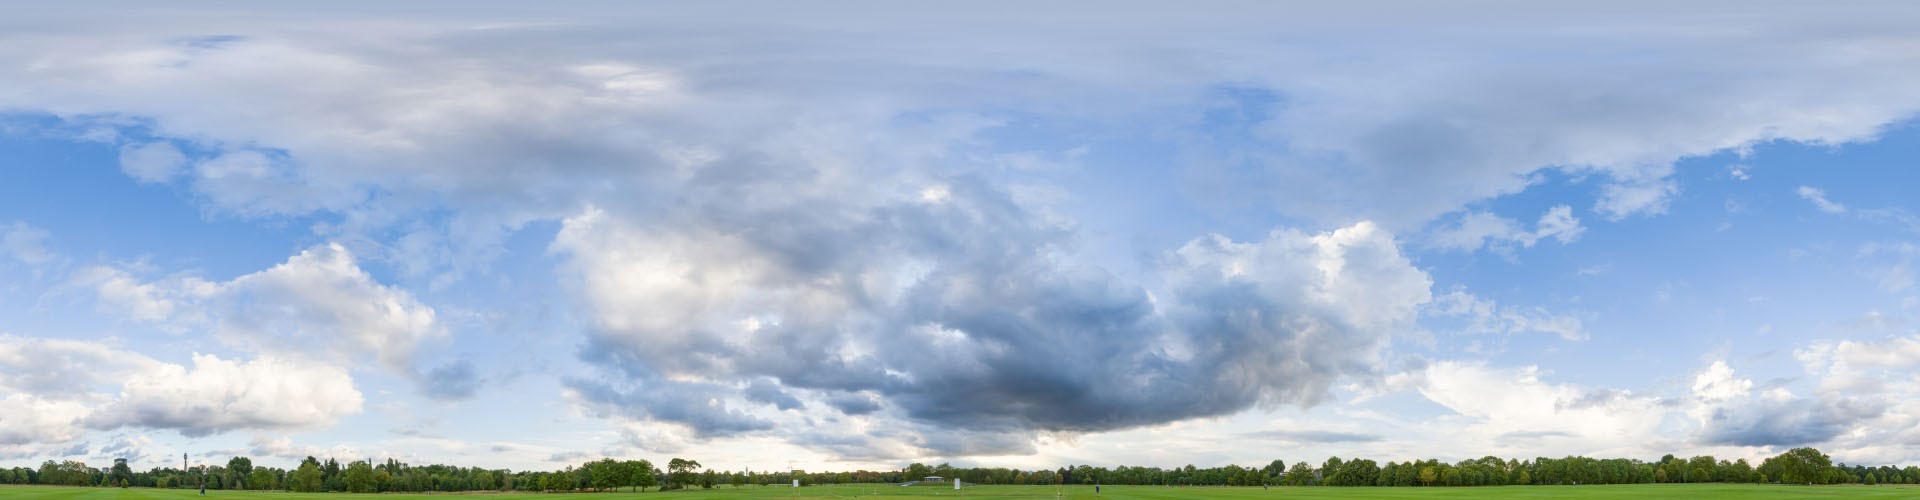 Rainy Clouds 3219 (30k) HDRI